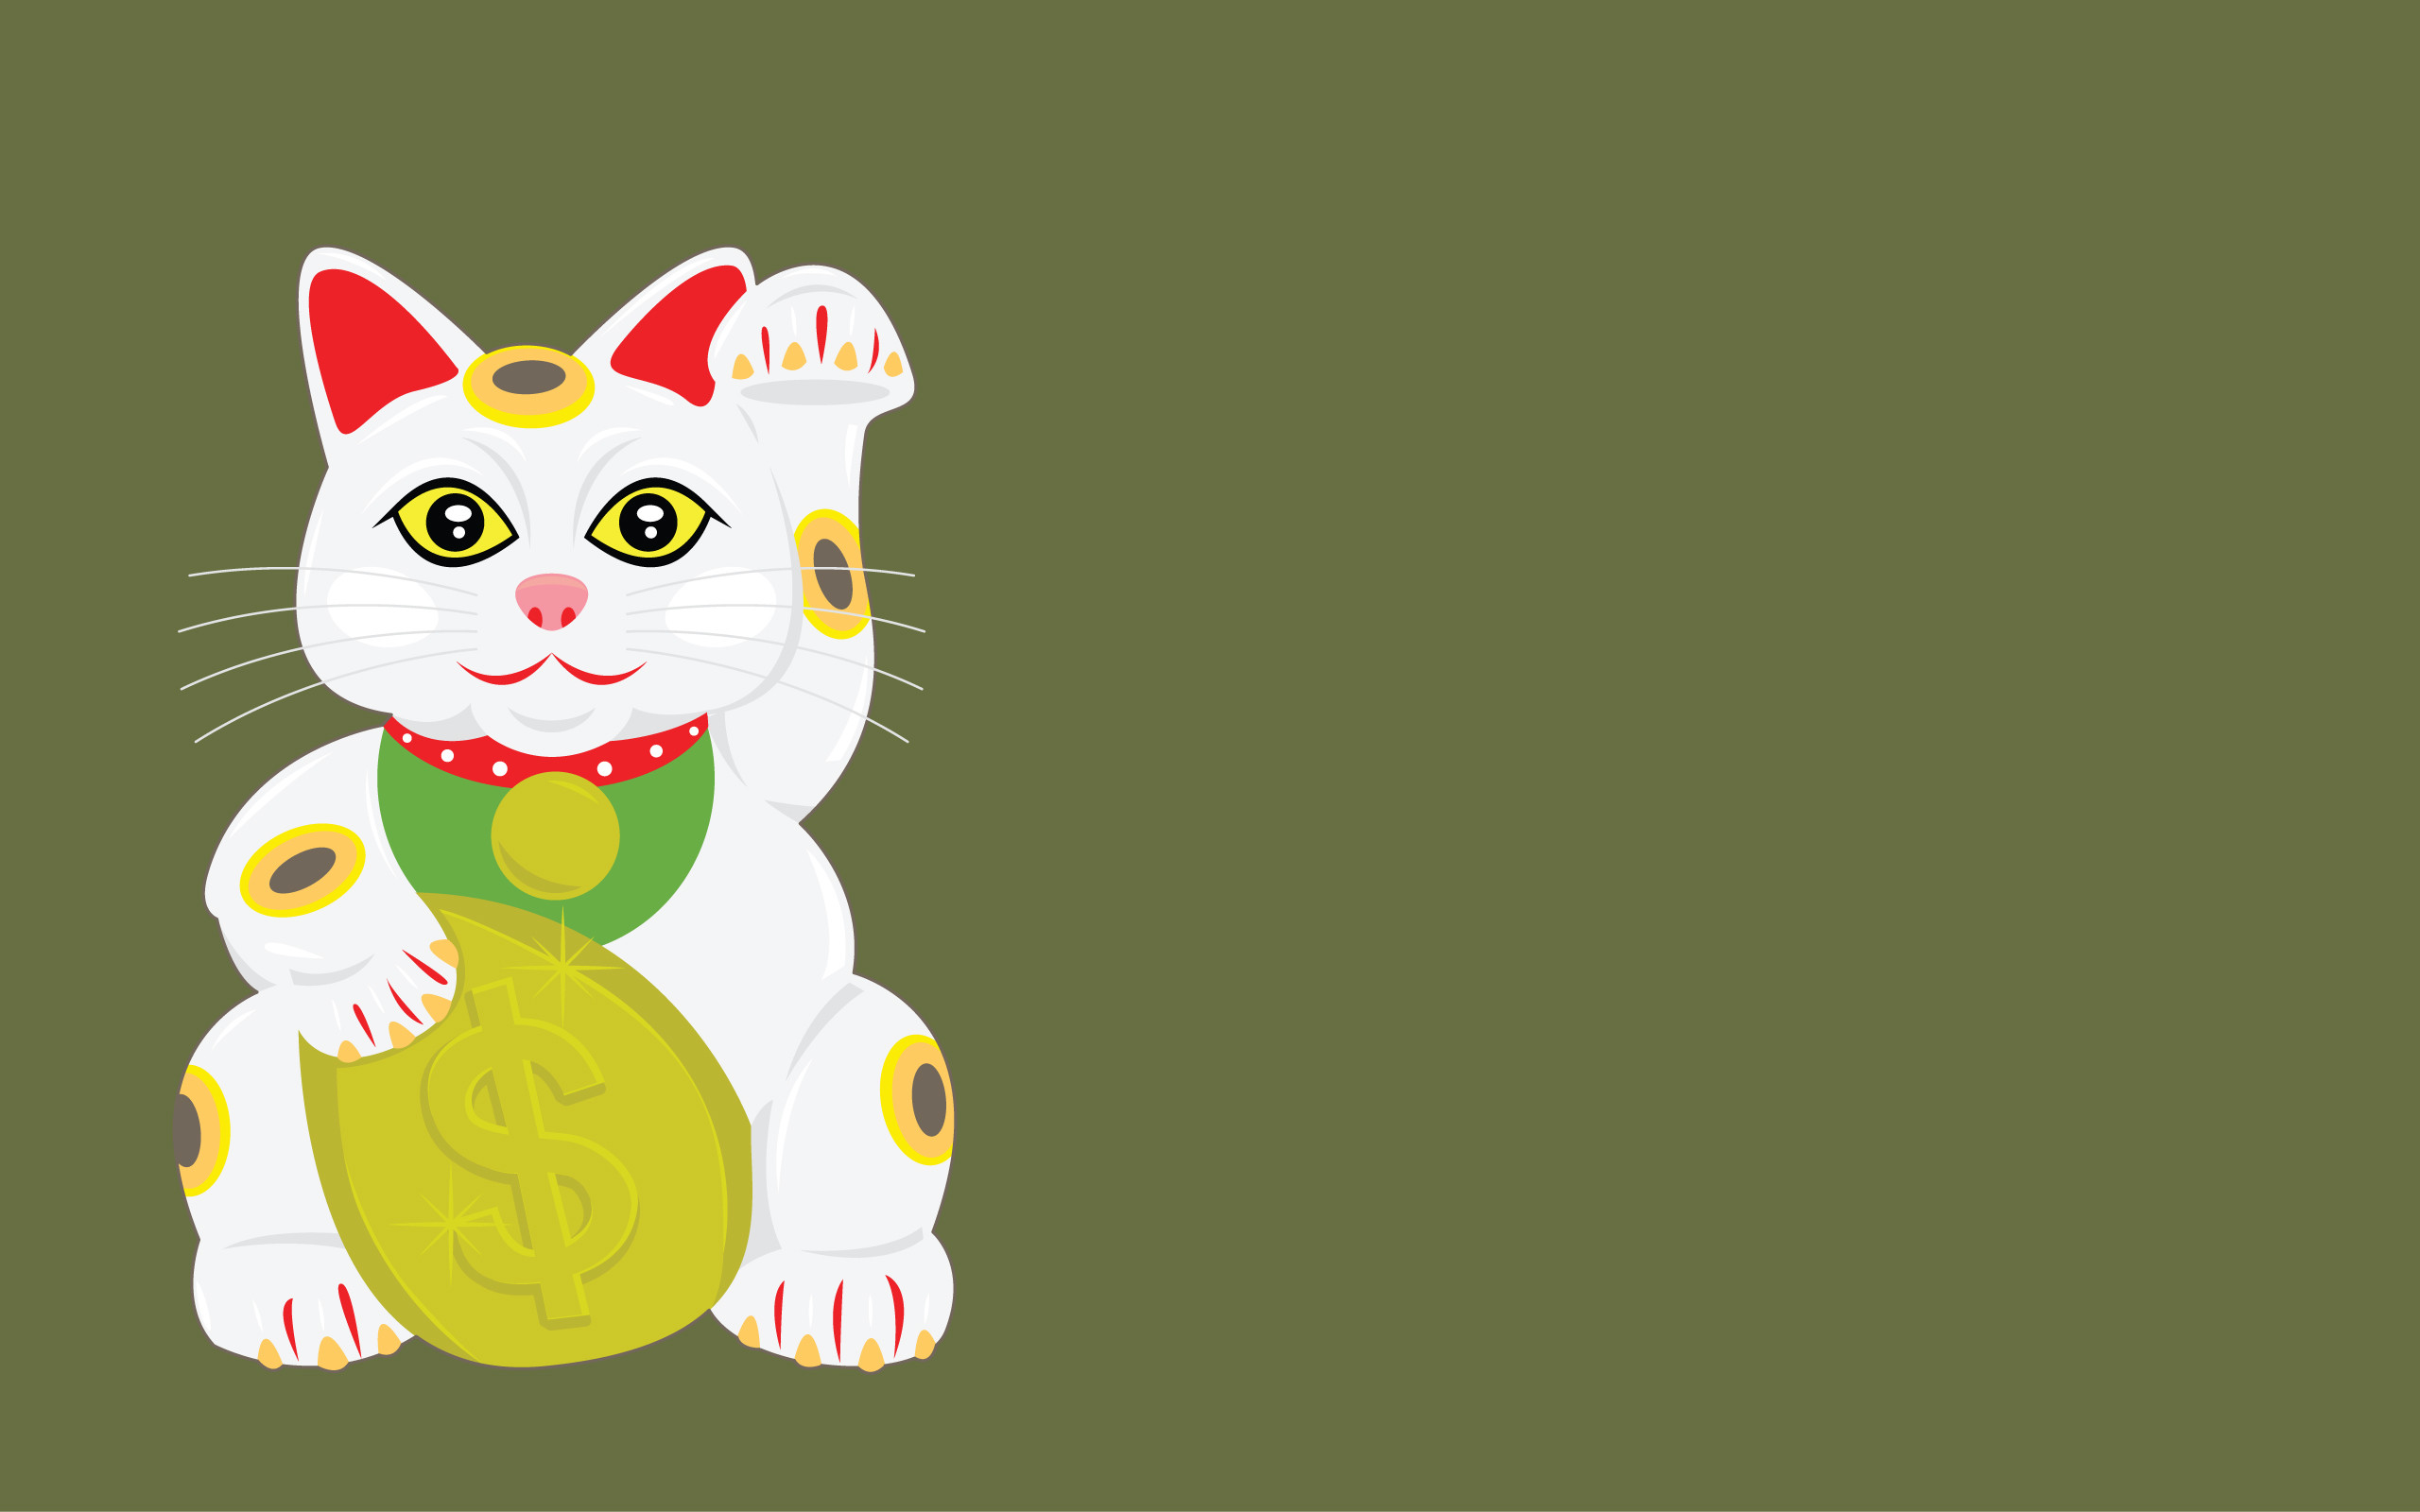 2560x1600 free vector lucky cat vector wallpaper 011184 lucky cat widejpg